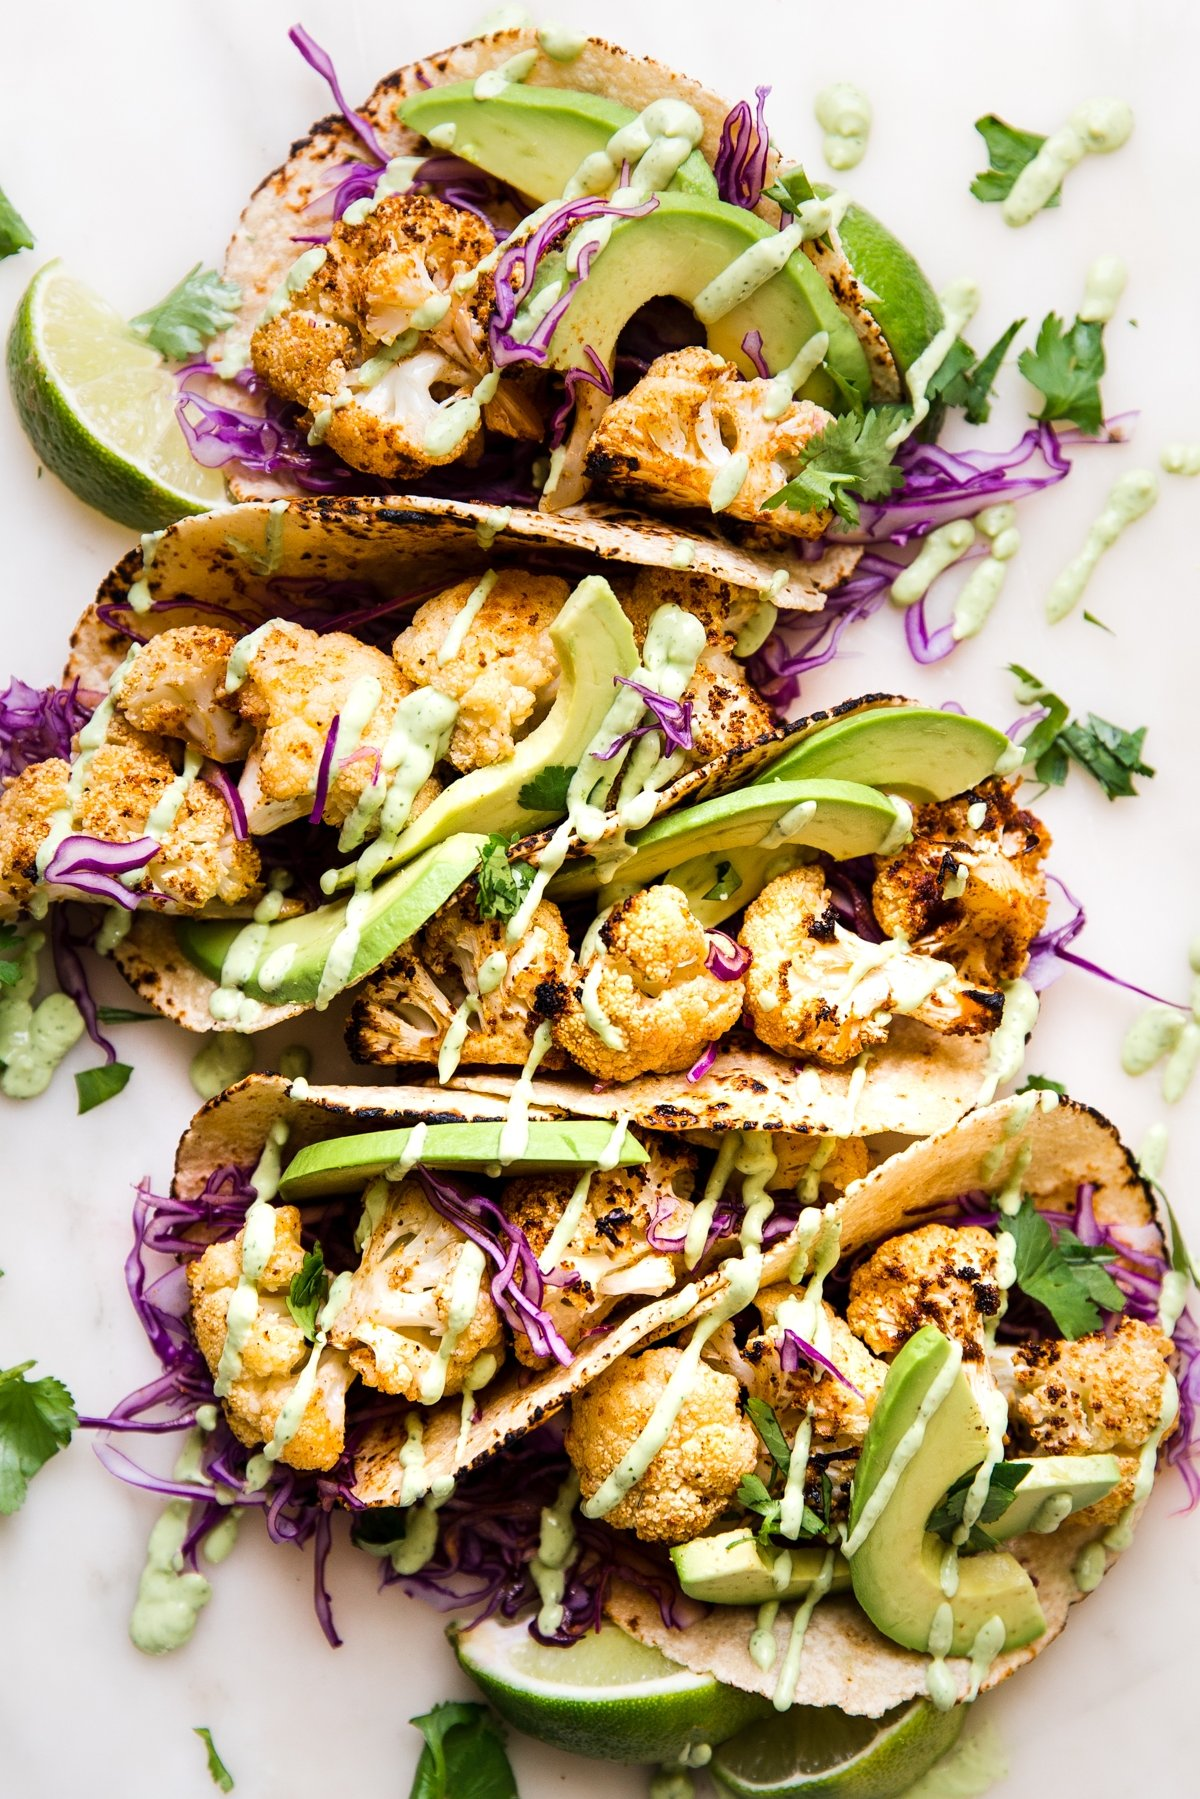 14 Healthy Cauliflower Recipes Beyond Just Pizza Crust